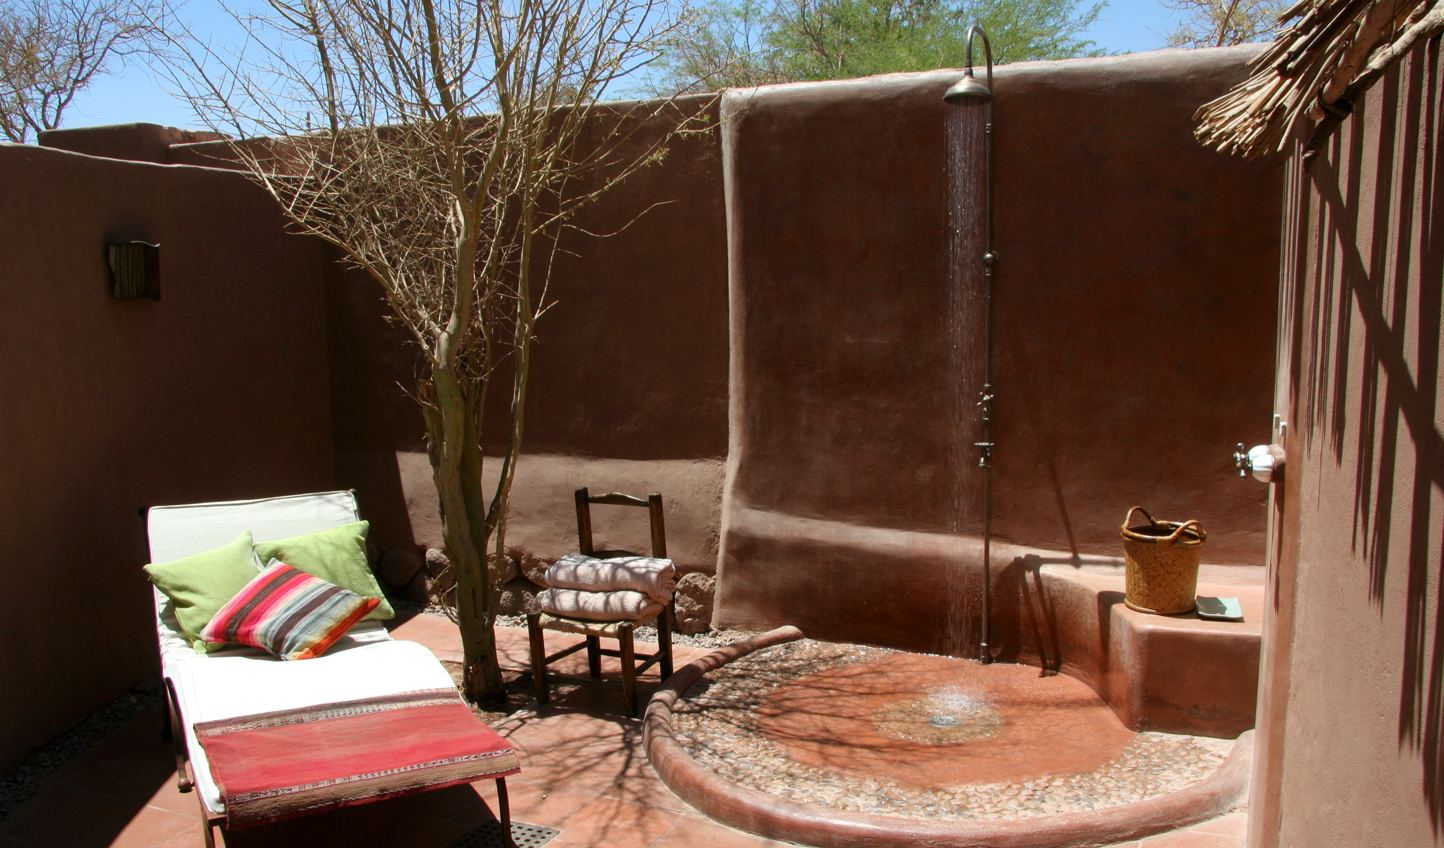 Get closer to nature in the outdoor bathrooms